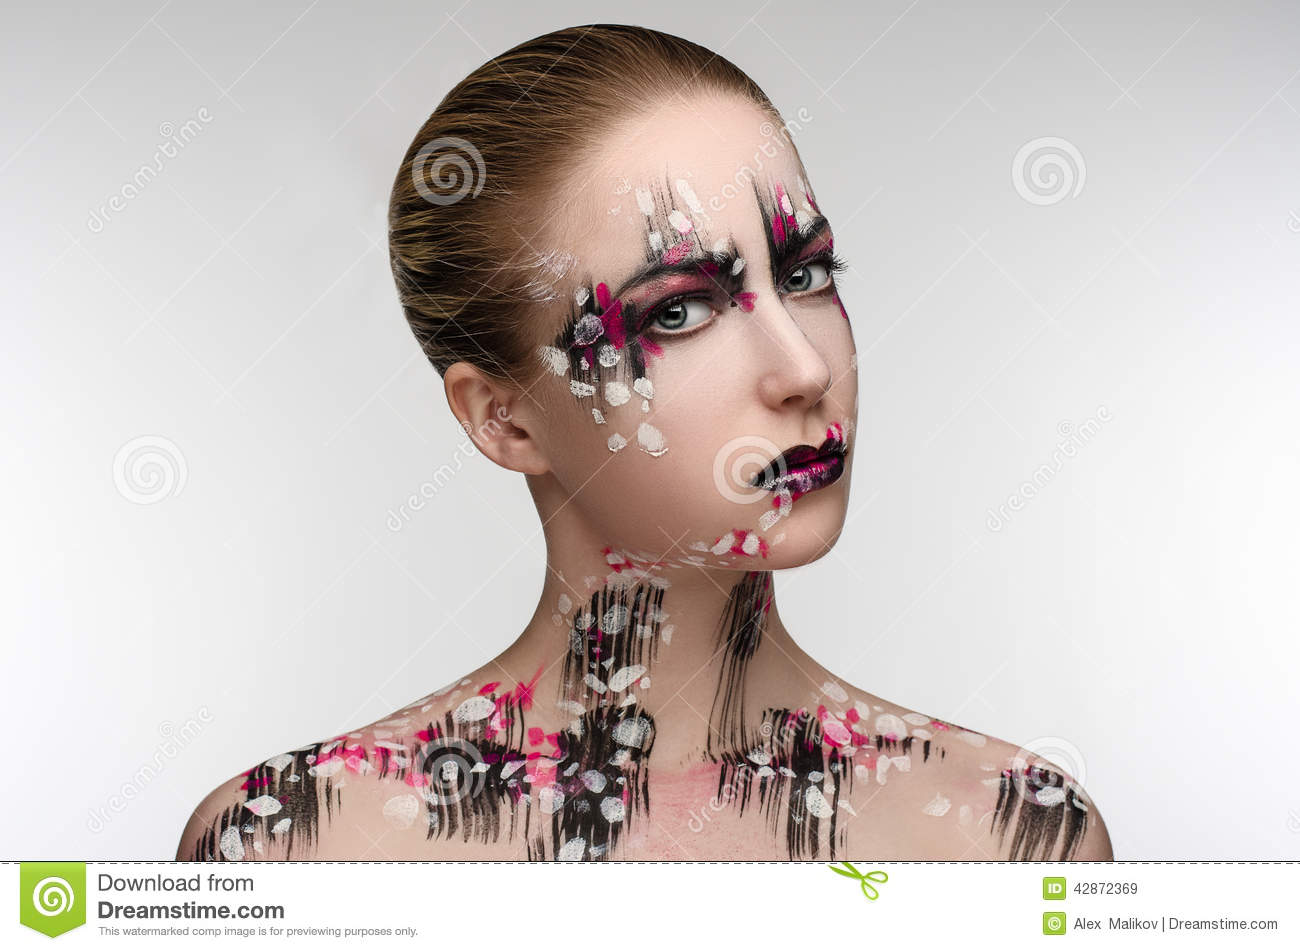 Girl with a black and pink makeup